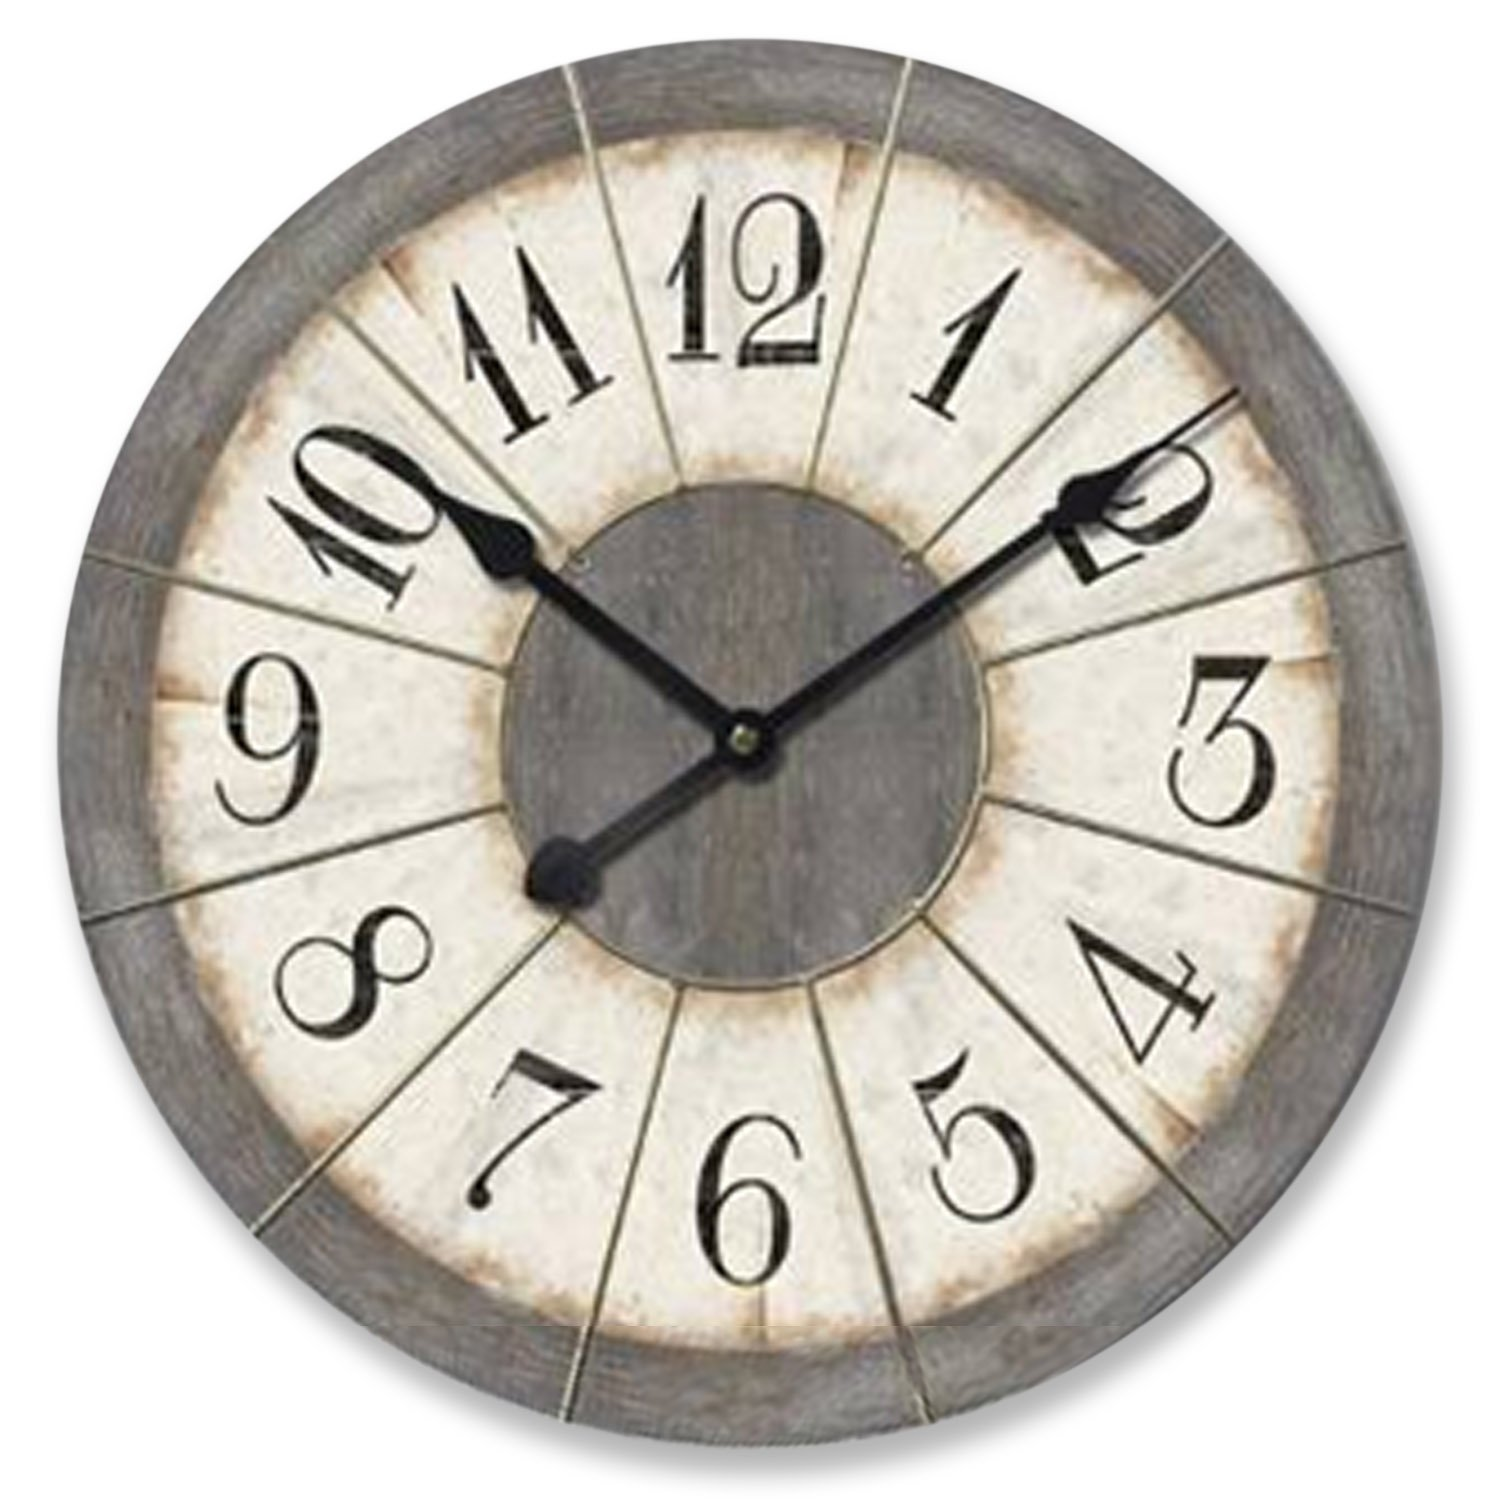 Giant Wall Clock Amazon Stylish Large Wall Clocks Fun And Fashionable Home